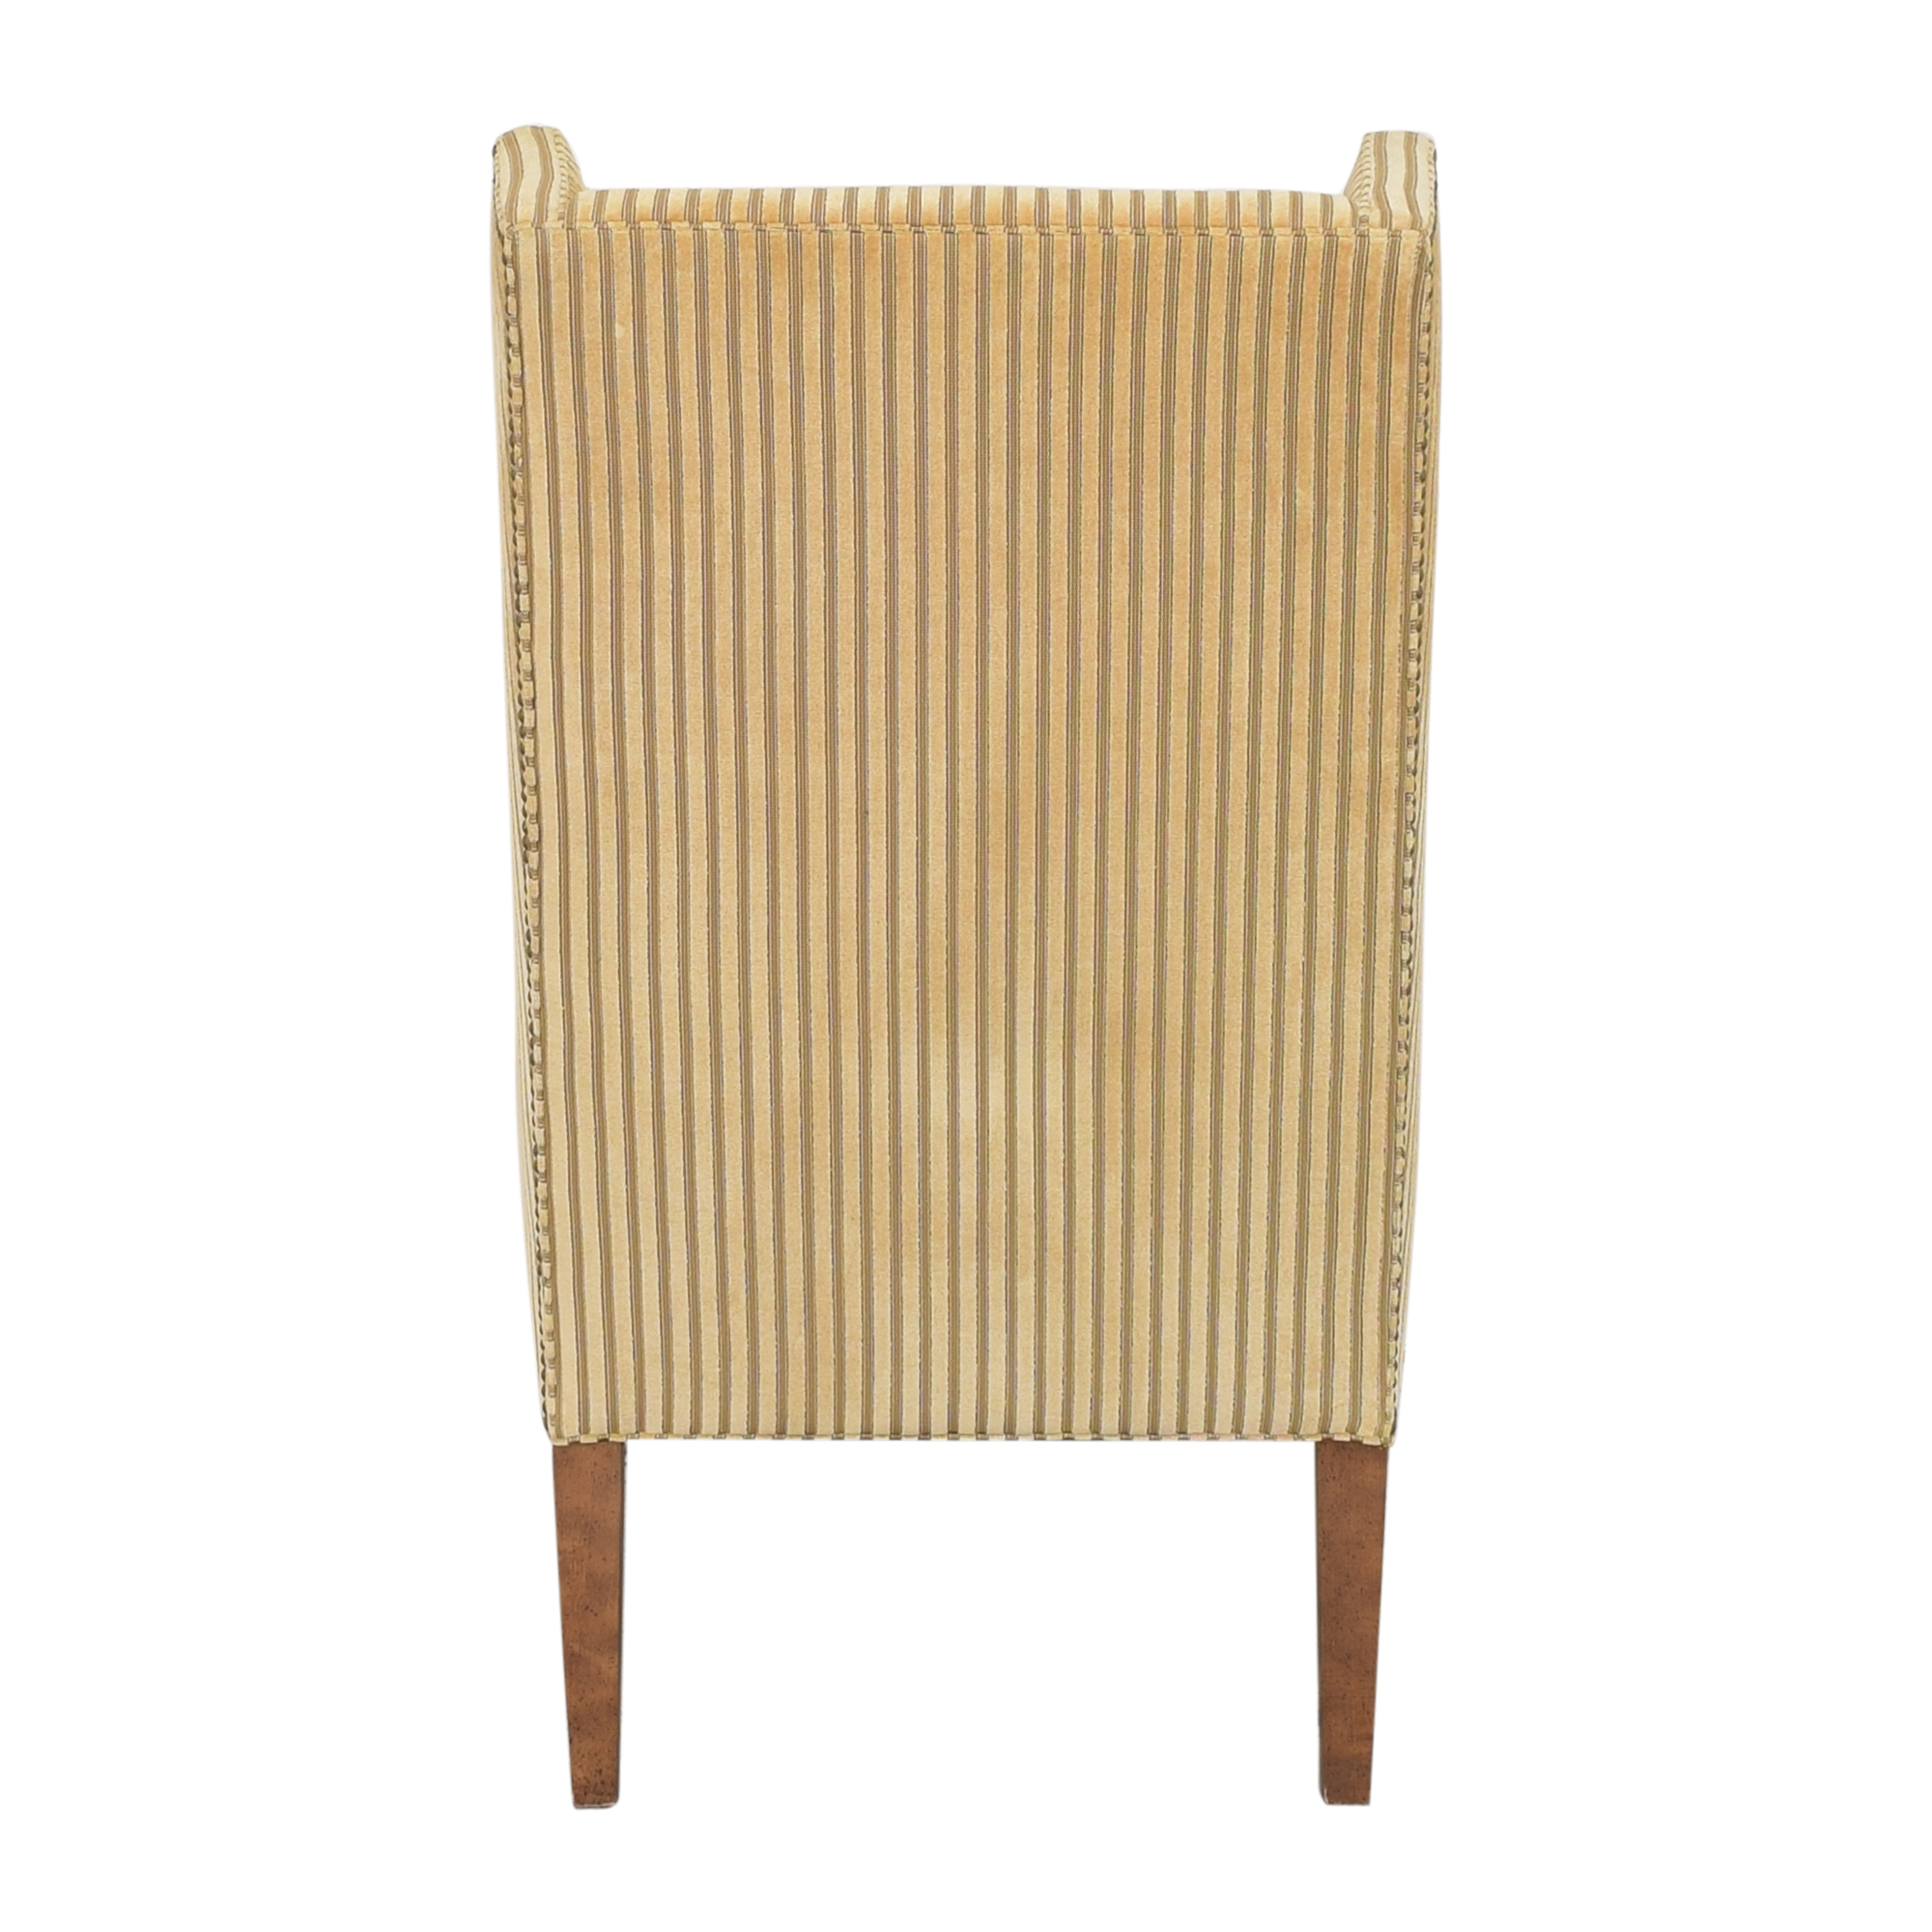 Lee Industries Lee Industries Wing Accent Chair on sale